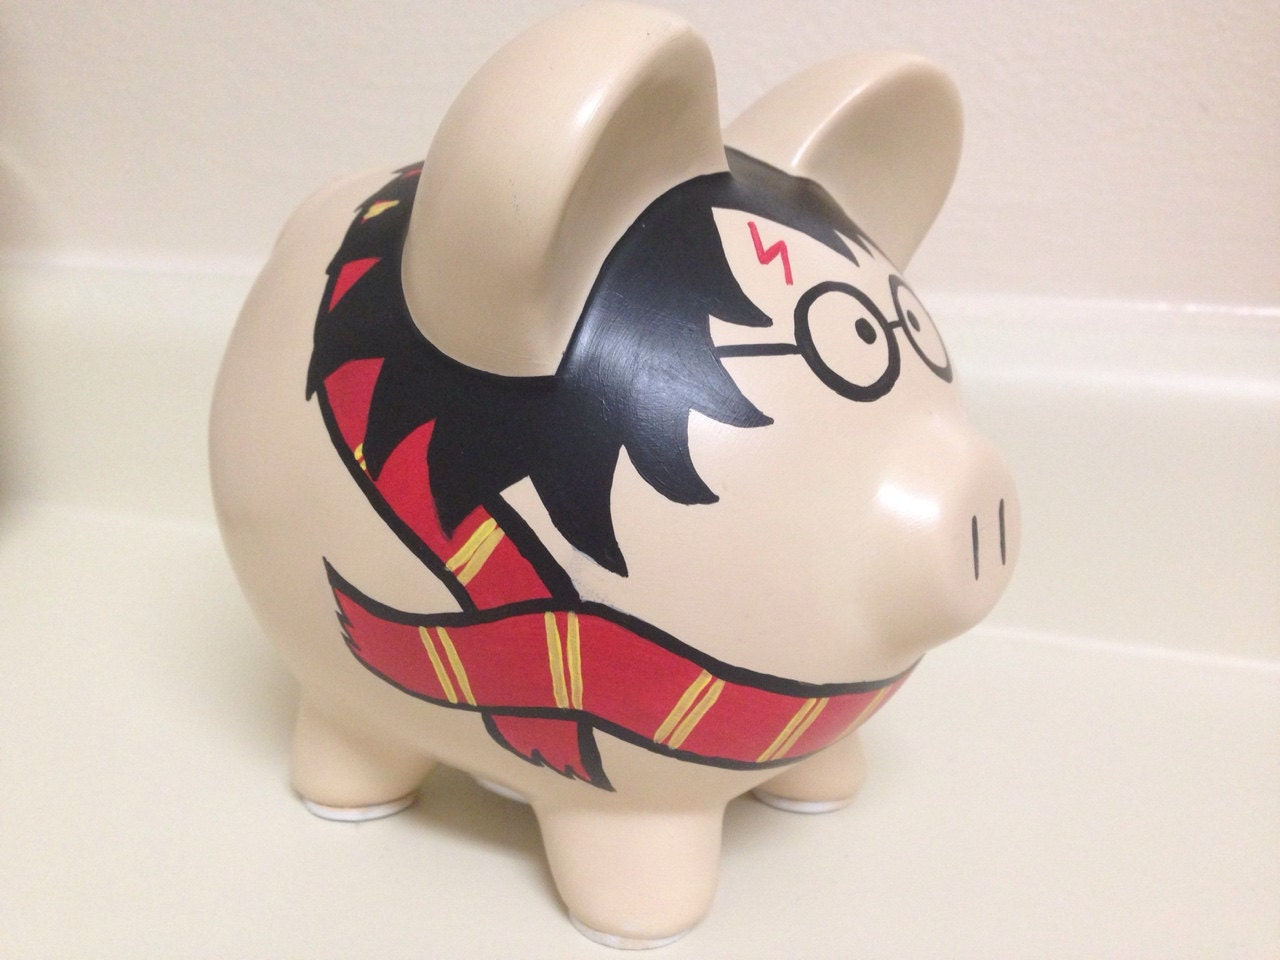 Harry potter painted ceramic piggy bank medium for How to make a piggy bank you can t open